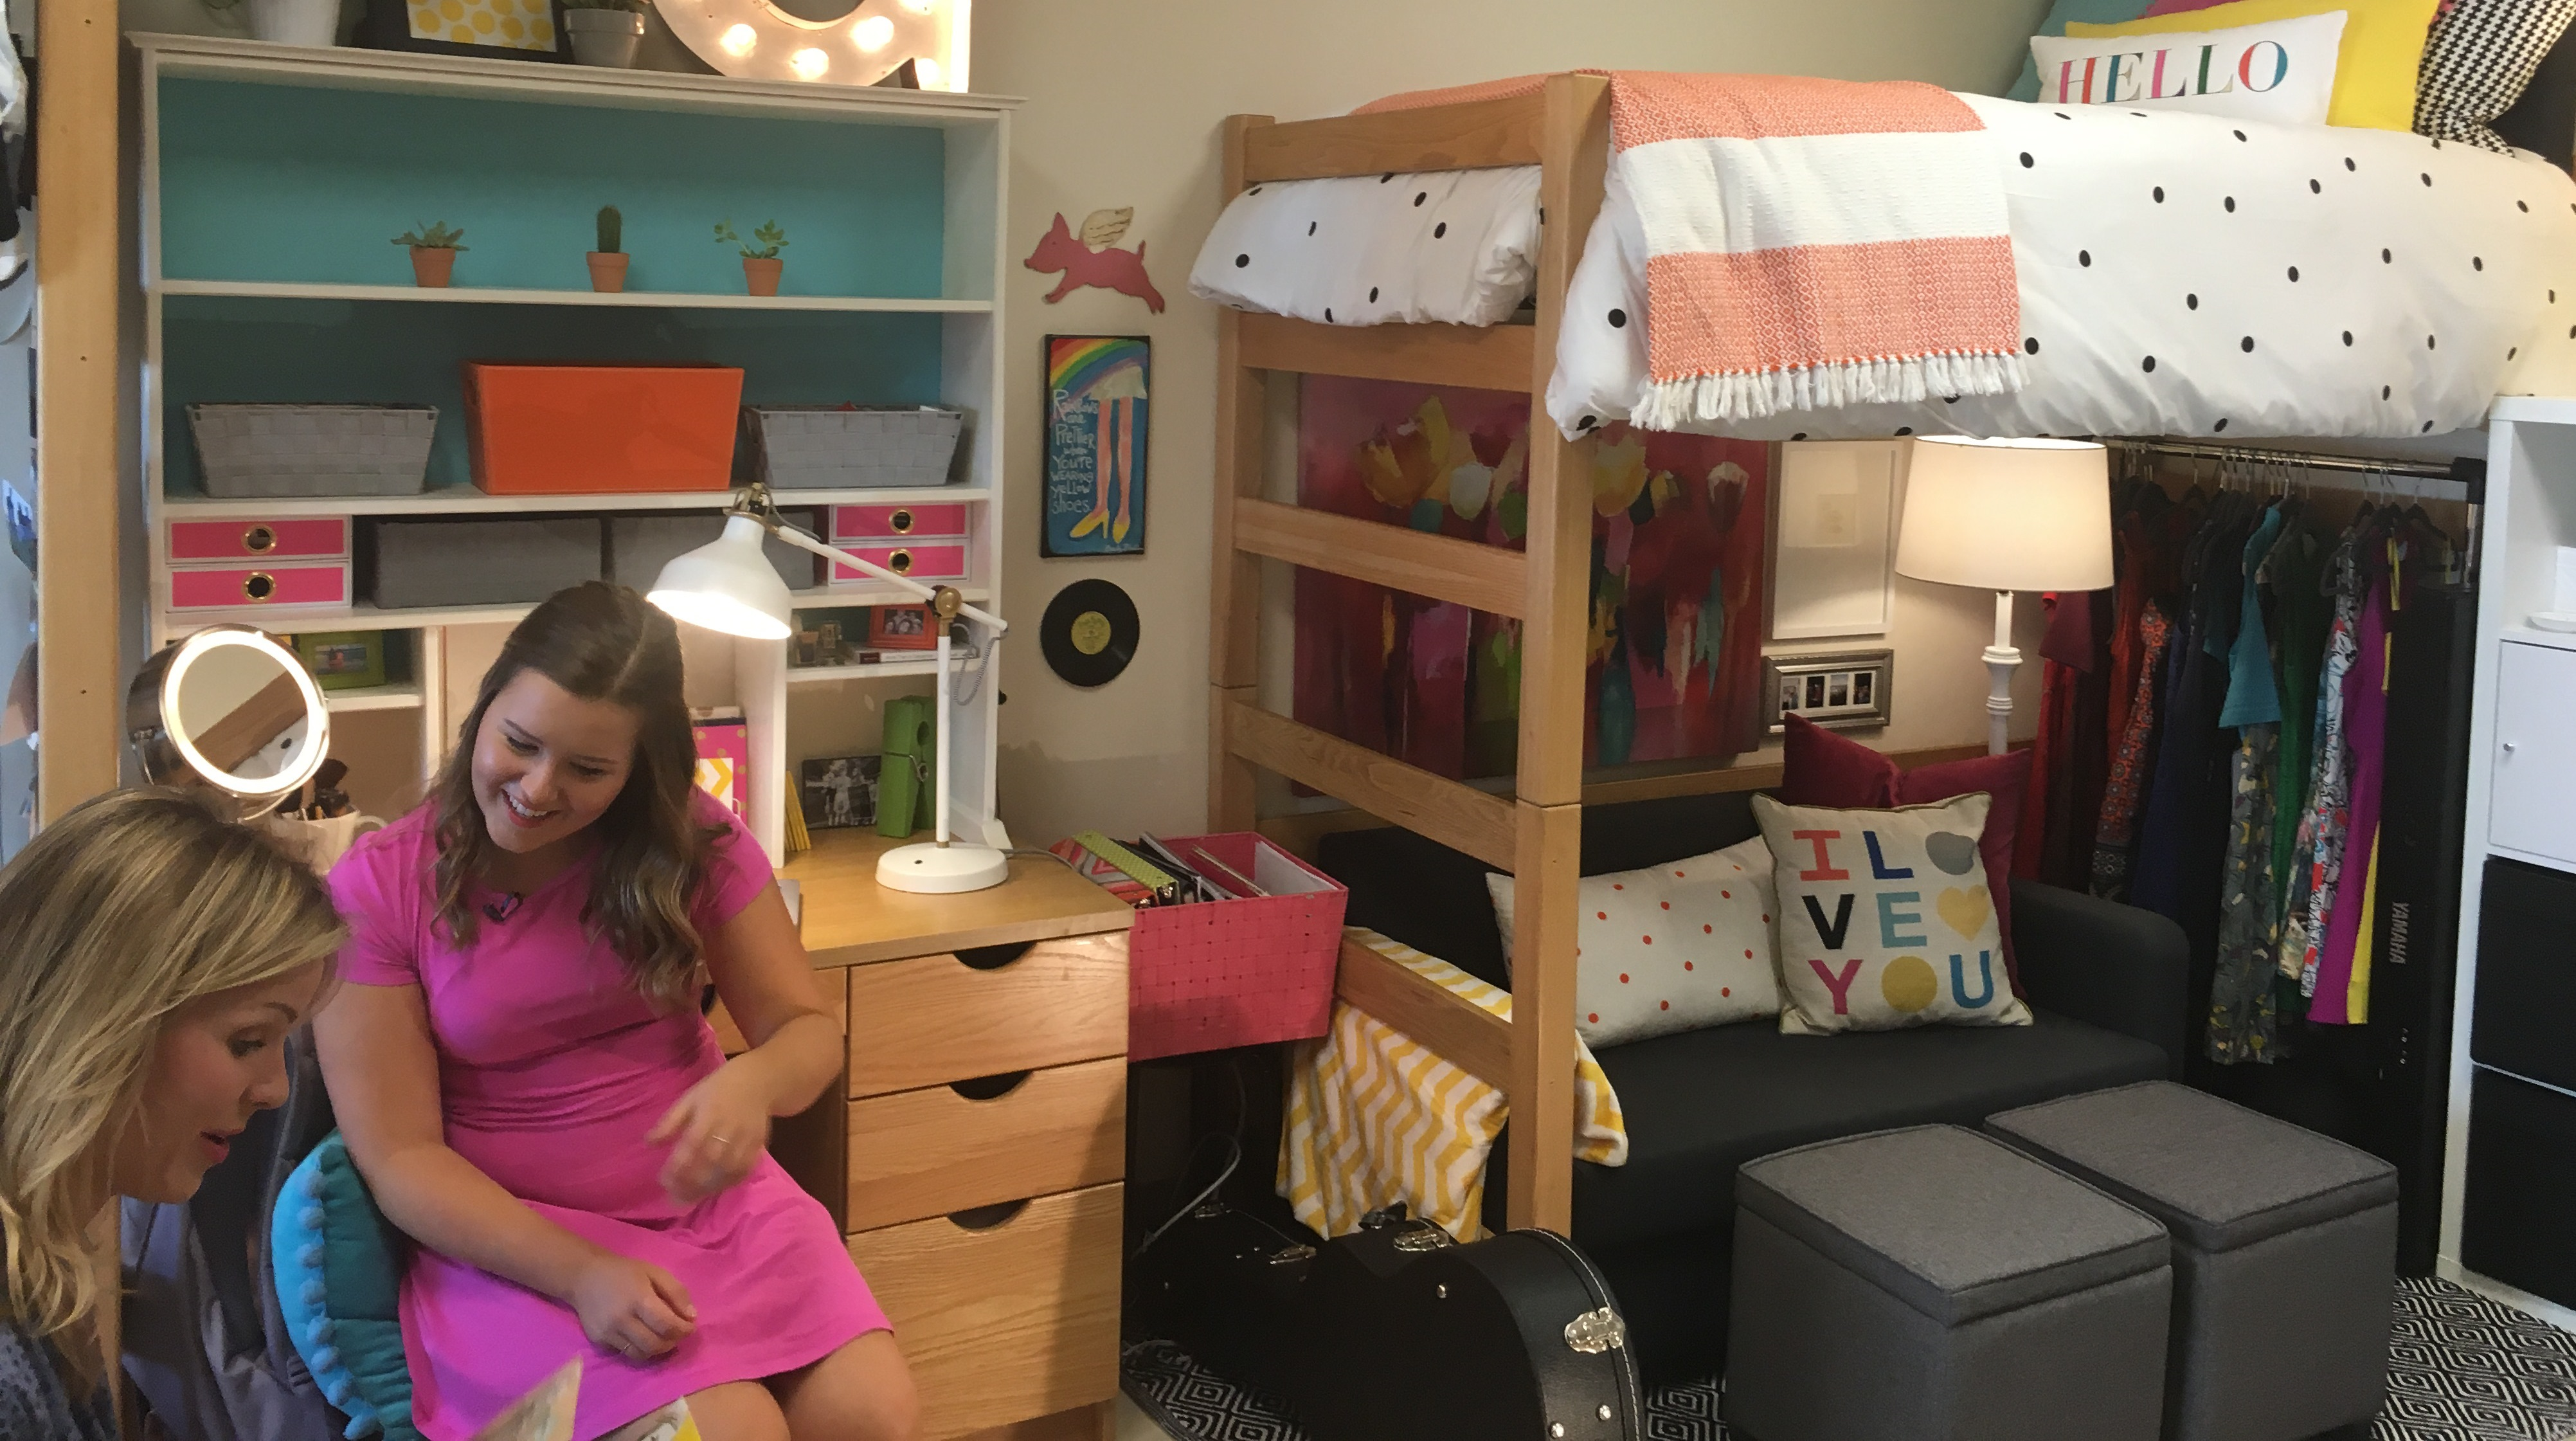 Gracie Schram, A Freshman From Kansas City, Was Recently Interviewed By  WKRNu0027s Samantha Fisher For Her Creatively Decorated Dorm Room And  Coordinating Music ...